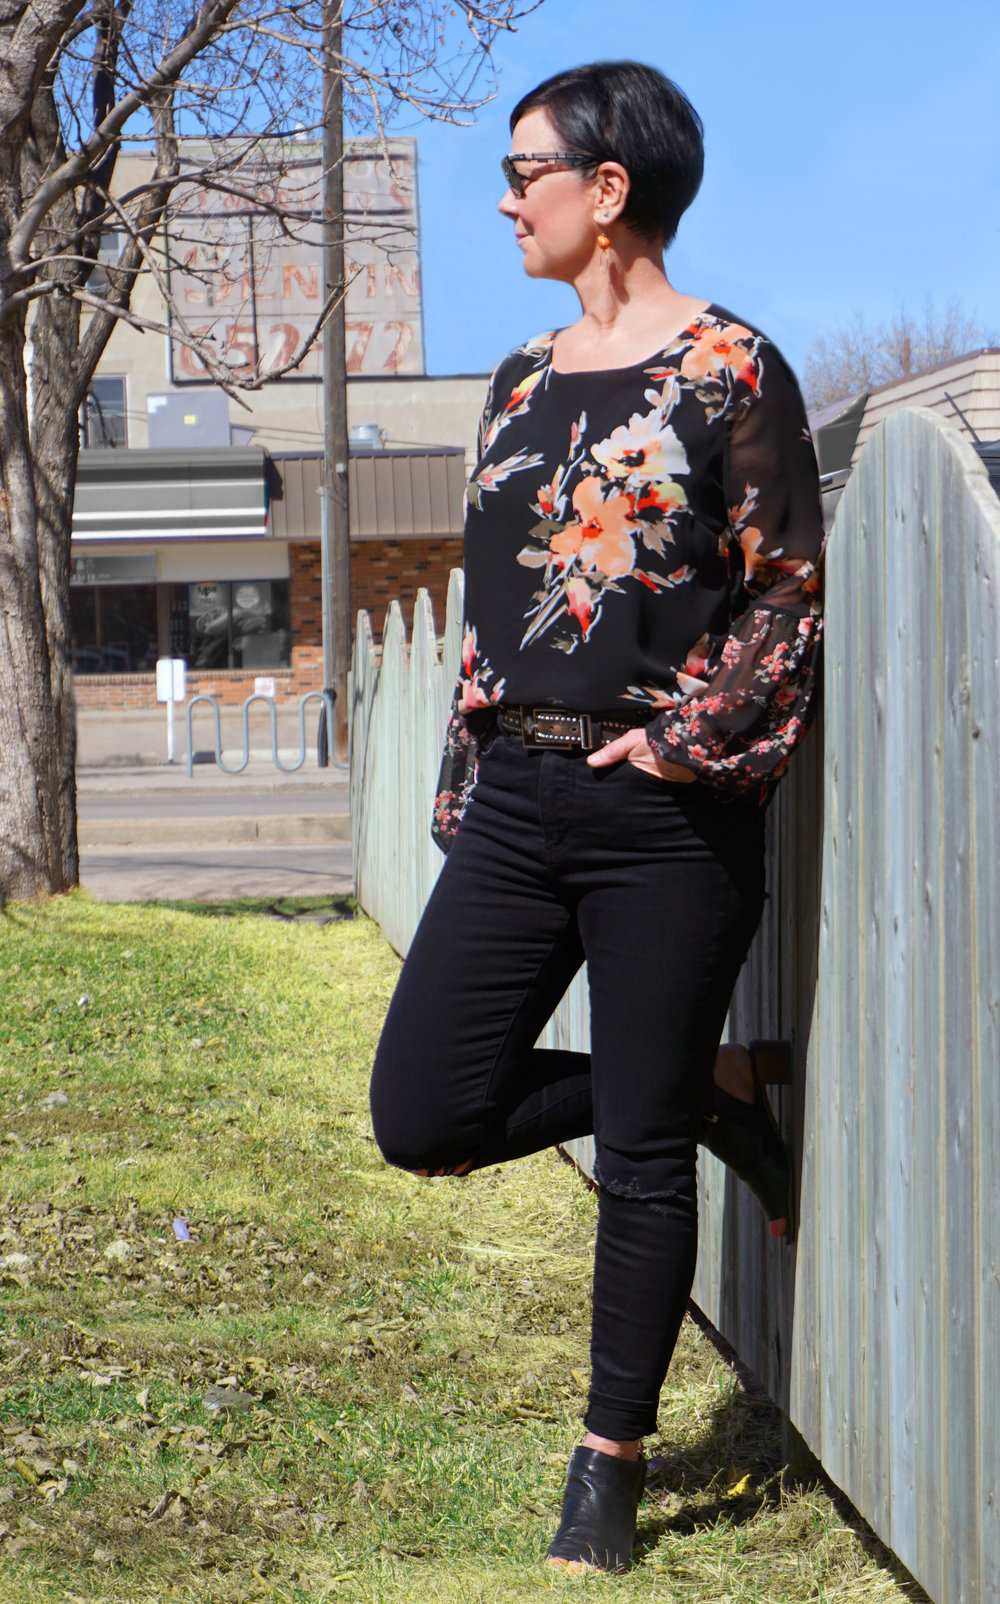 Here Colleen is wearing a floral chiffon blouse with coral earrings to match. Notice the blouse has a black background, keeping within the black palette she loves.